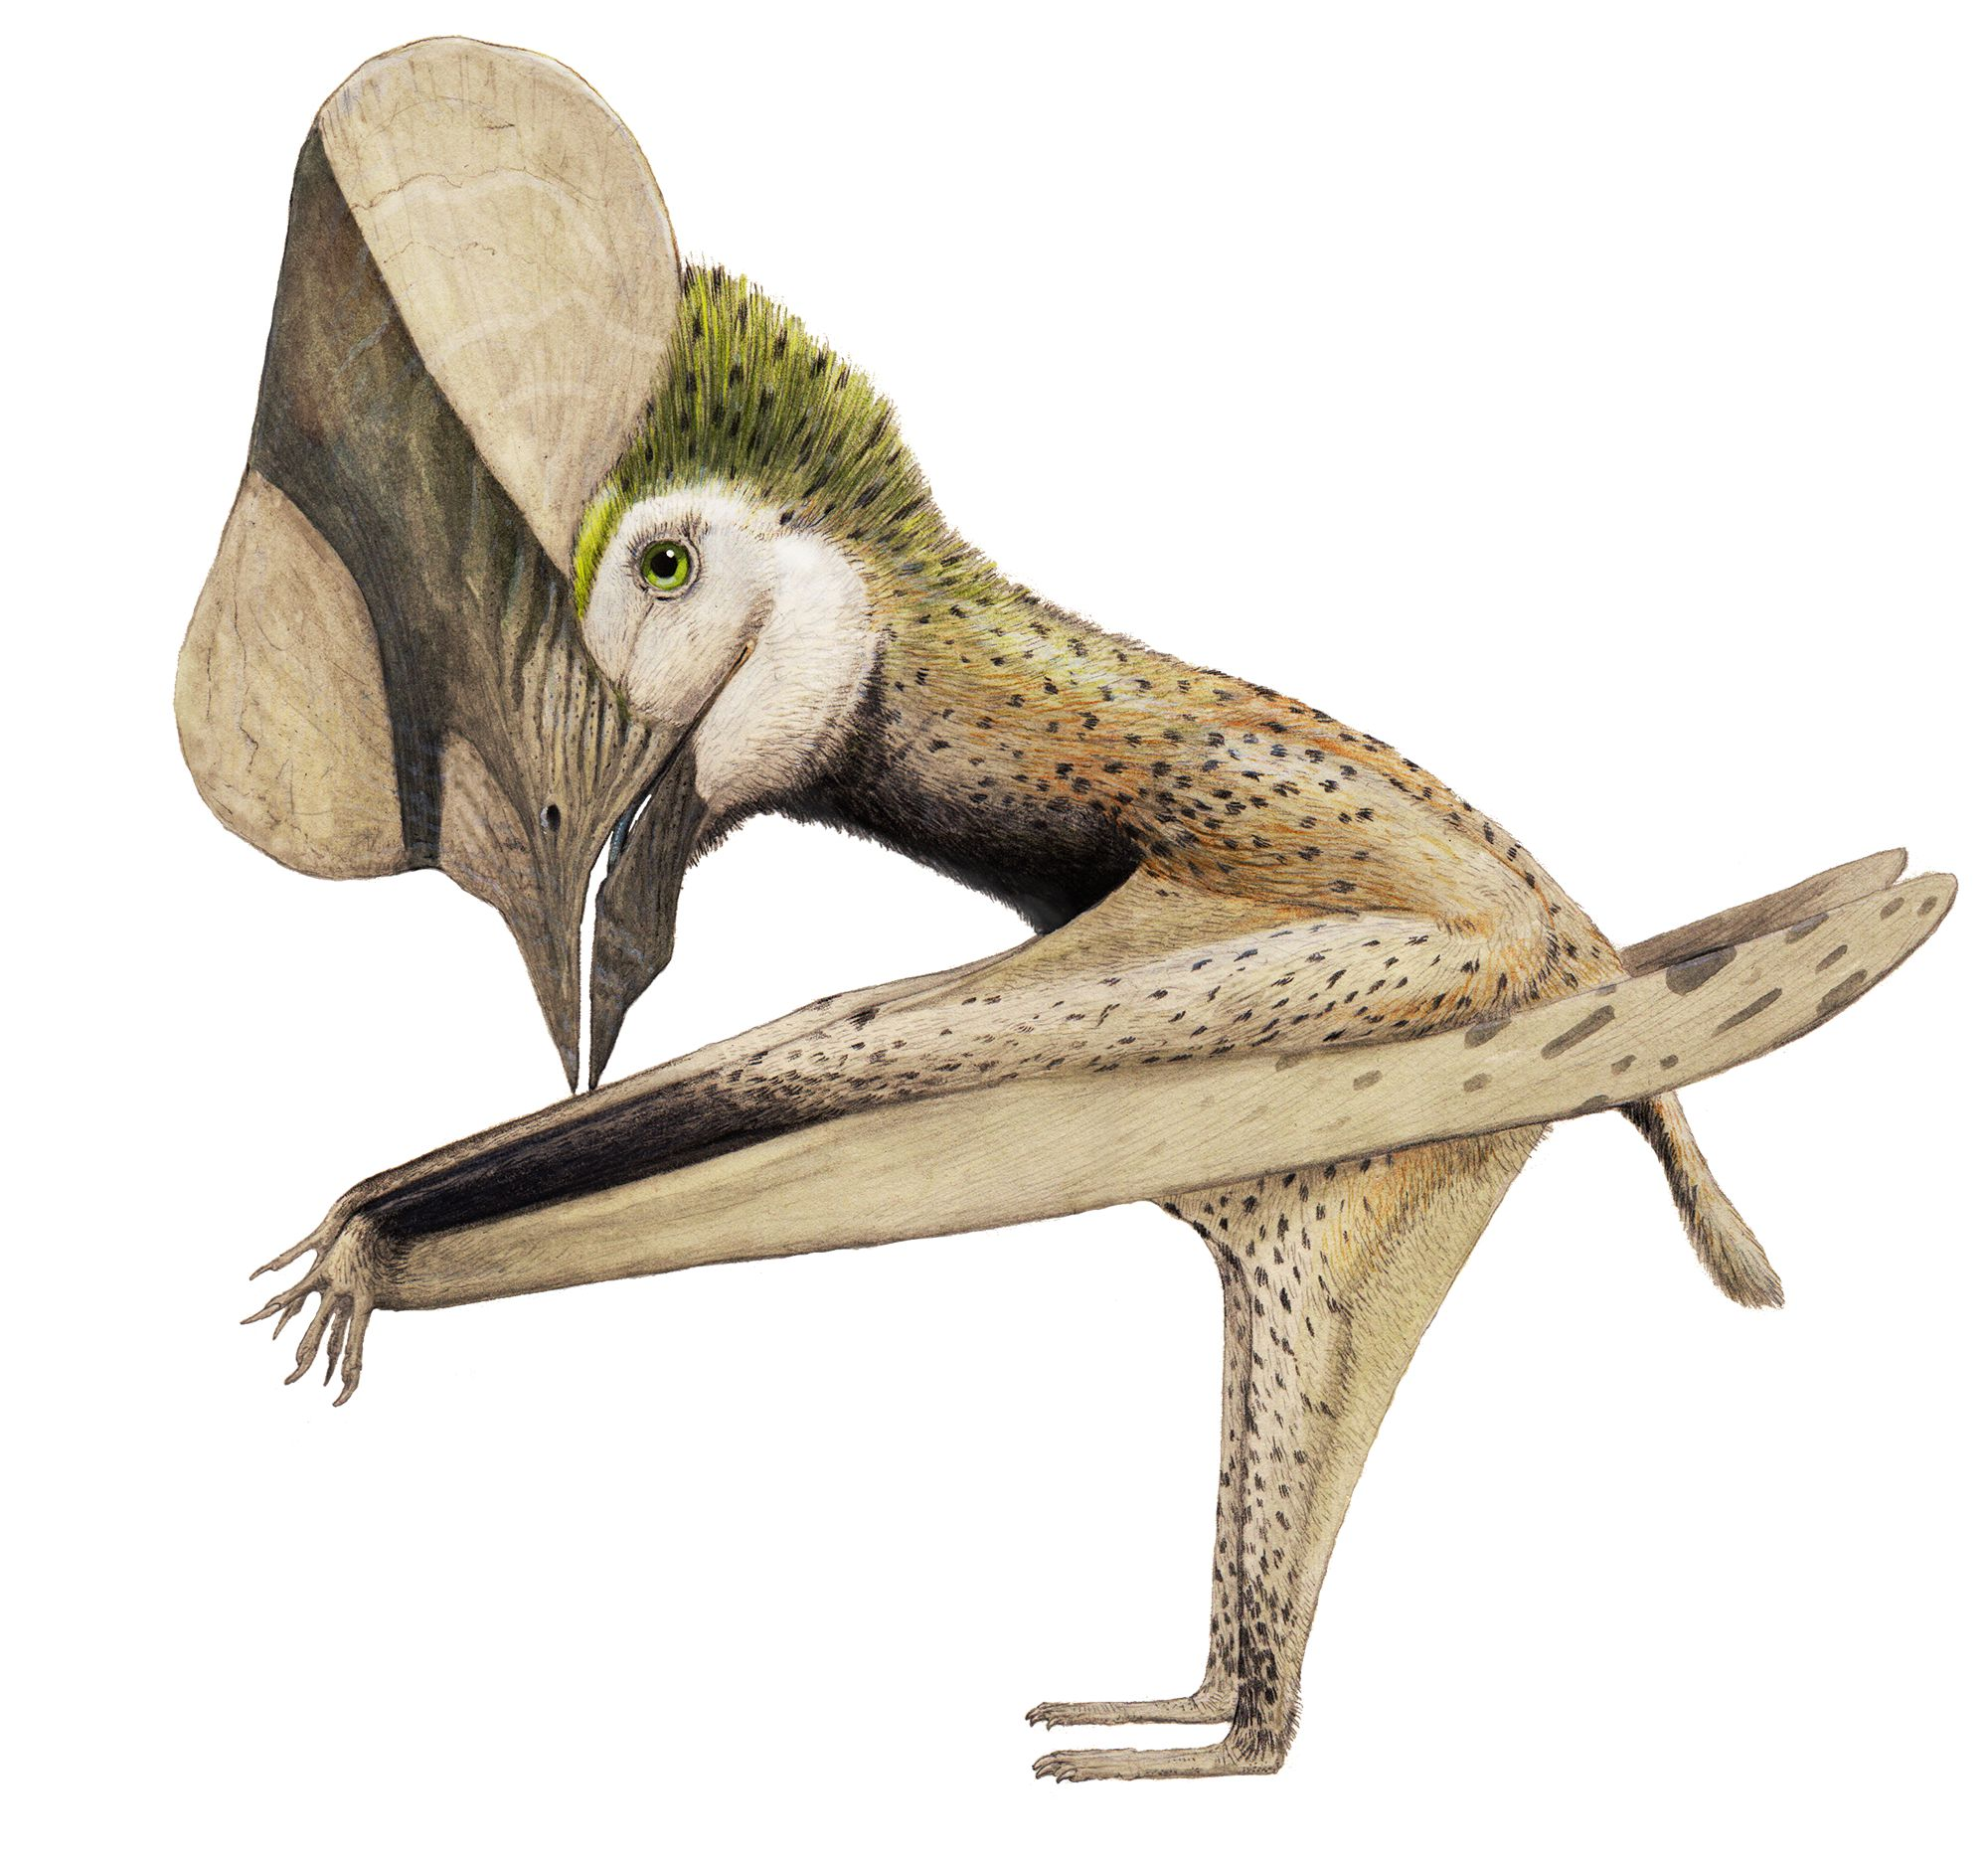 Huaxiapterus